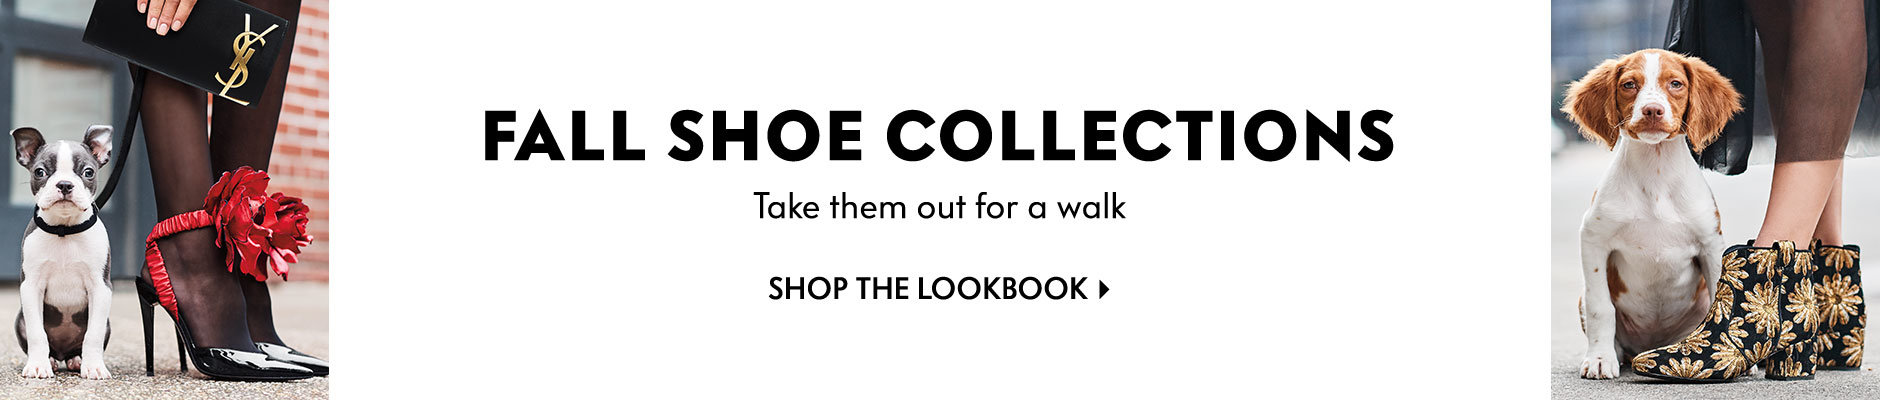 Fall Shoe Collections: Take them out for a walk